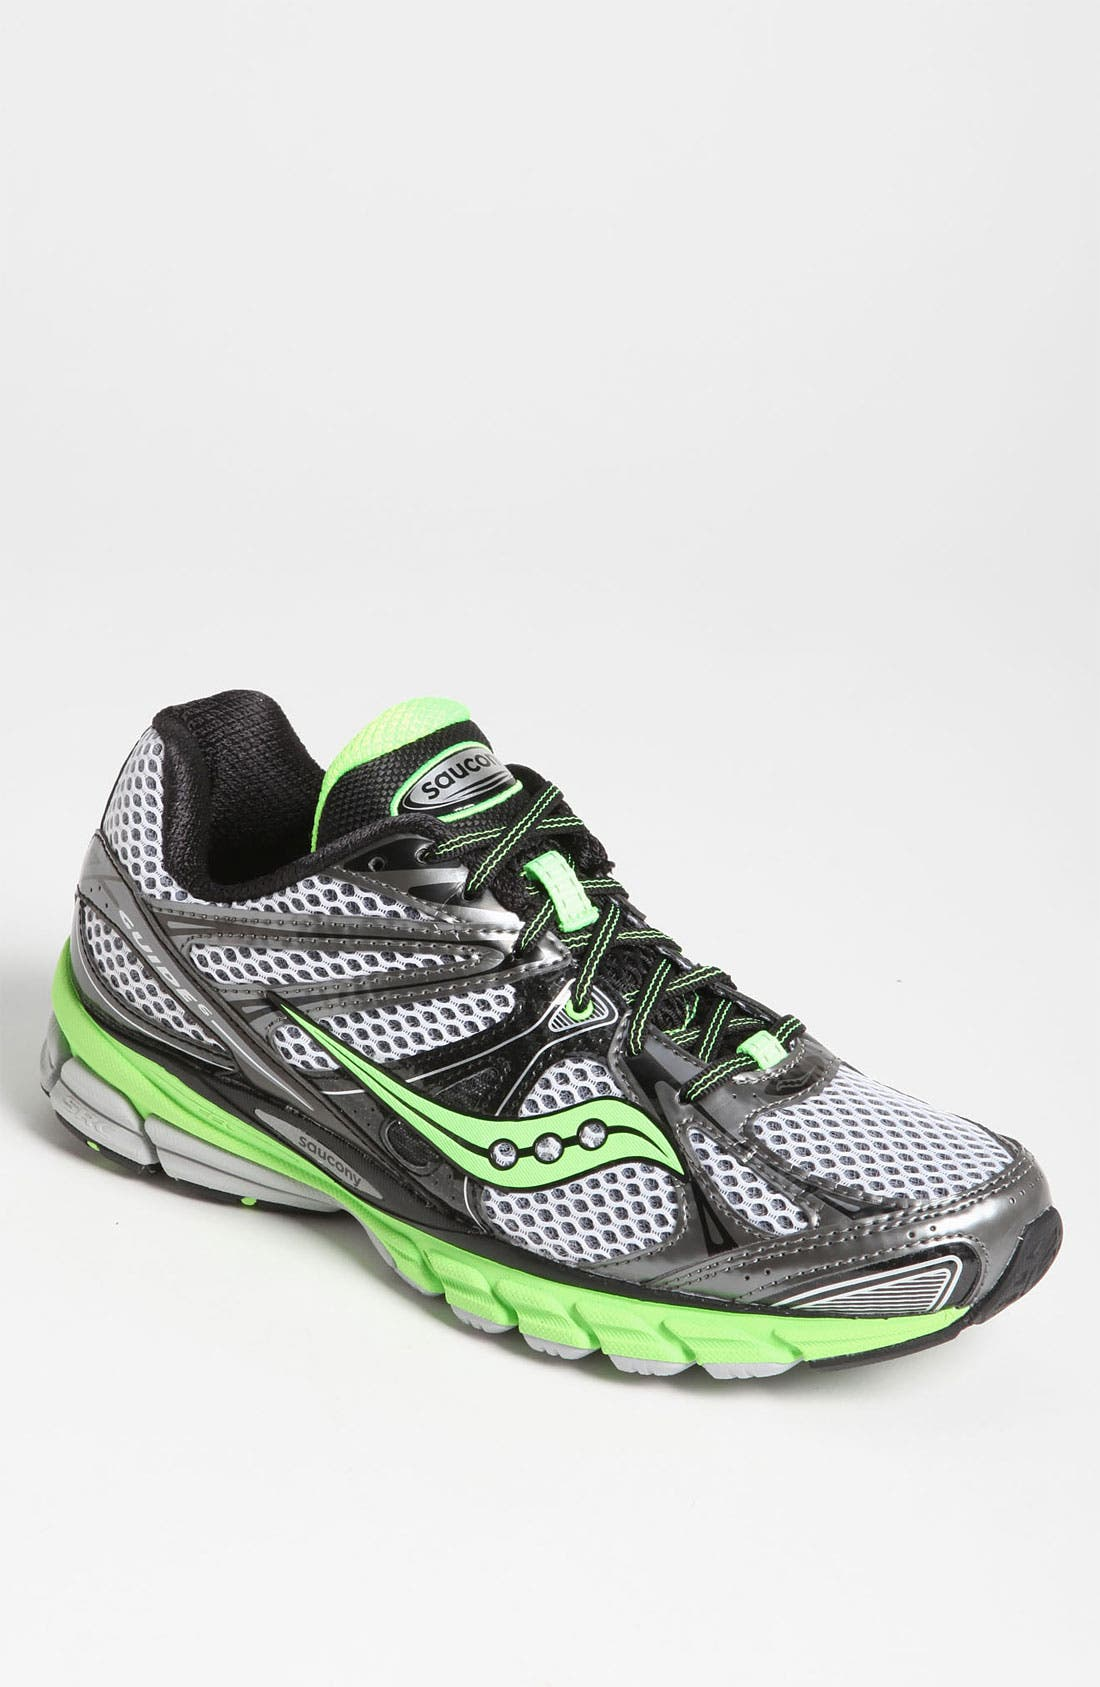 Main Image - Saucony 'Guide 6' Running Shoe (Men)